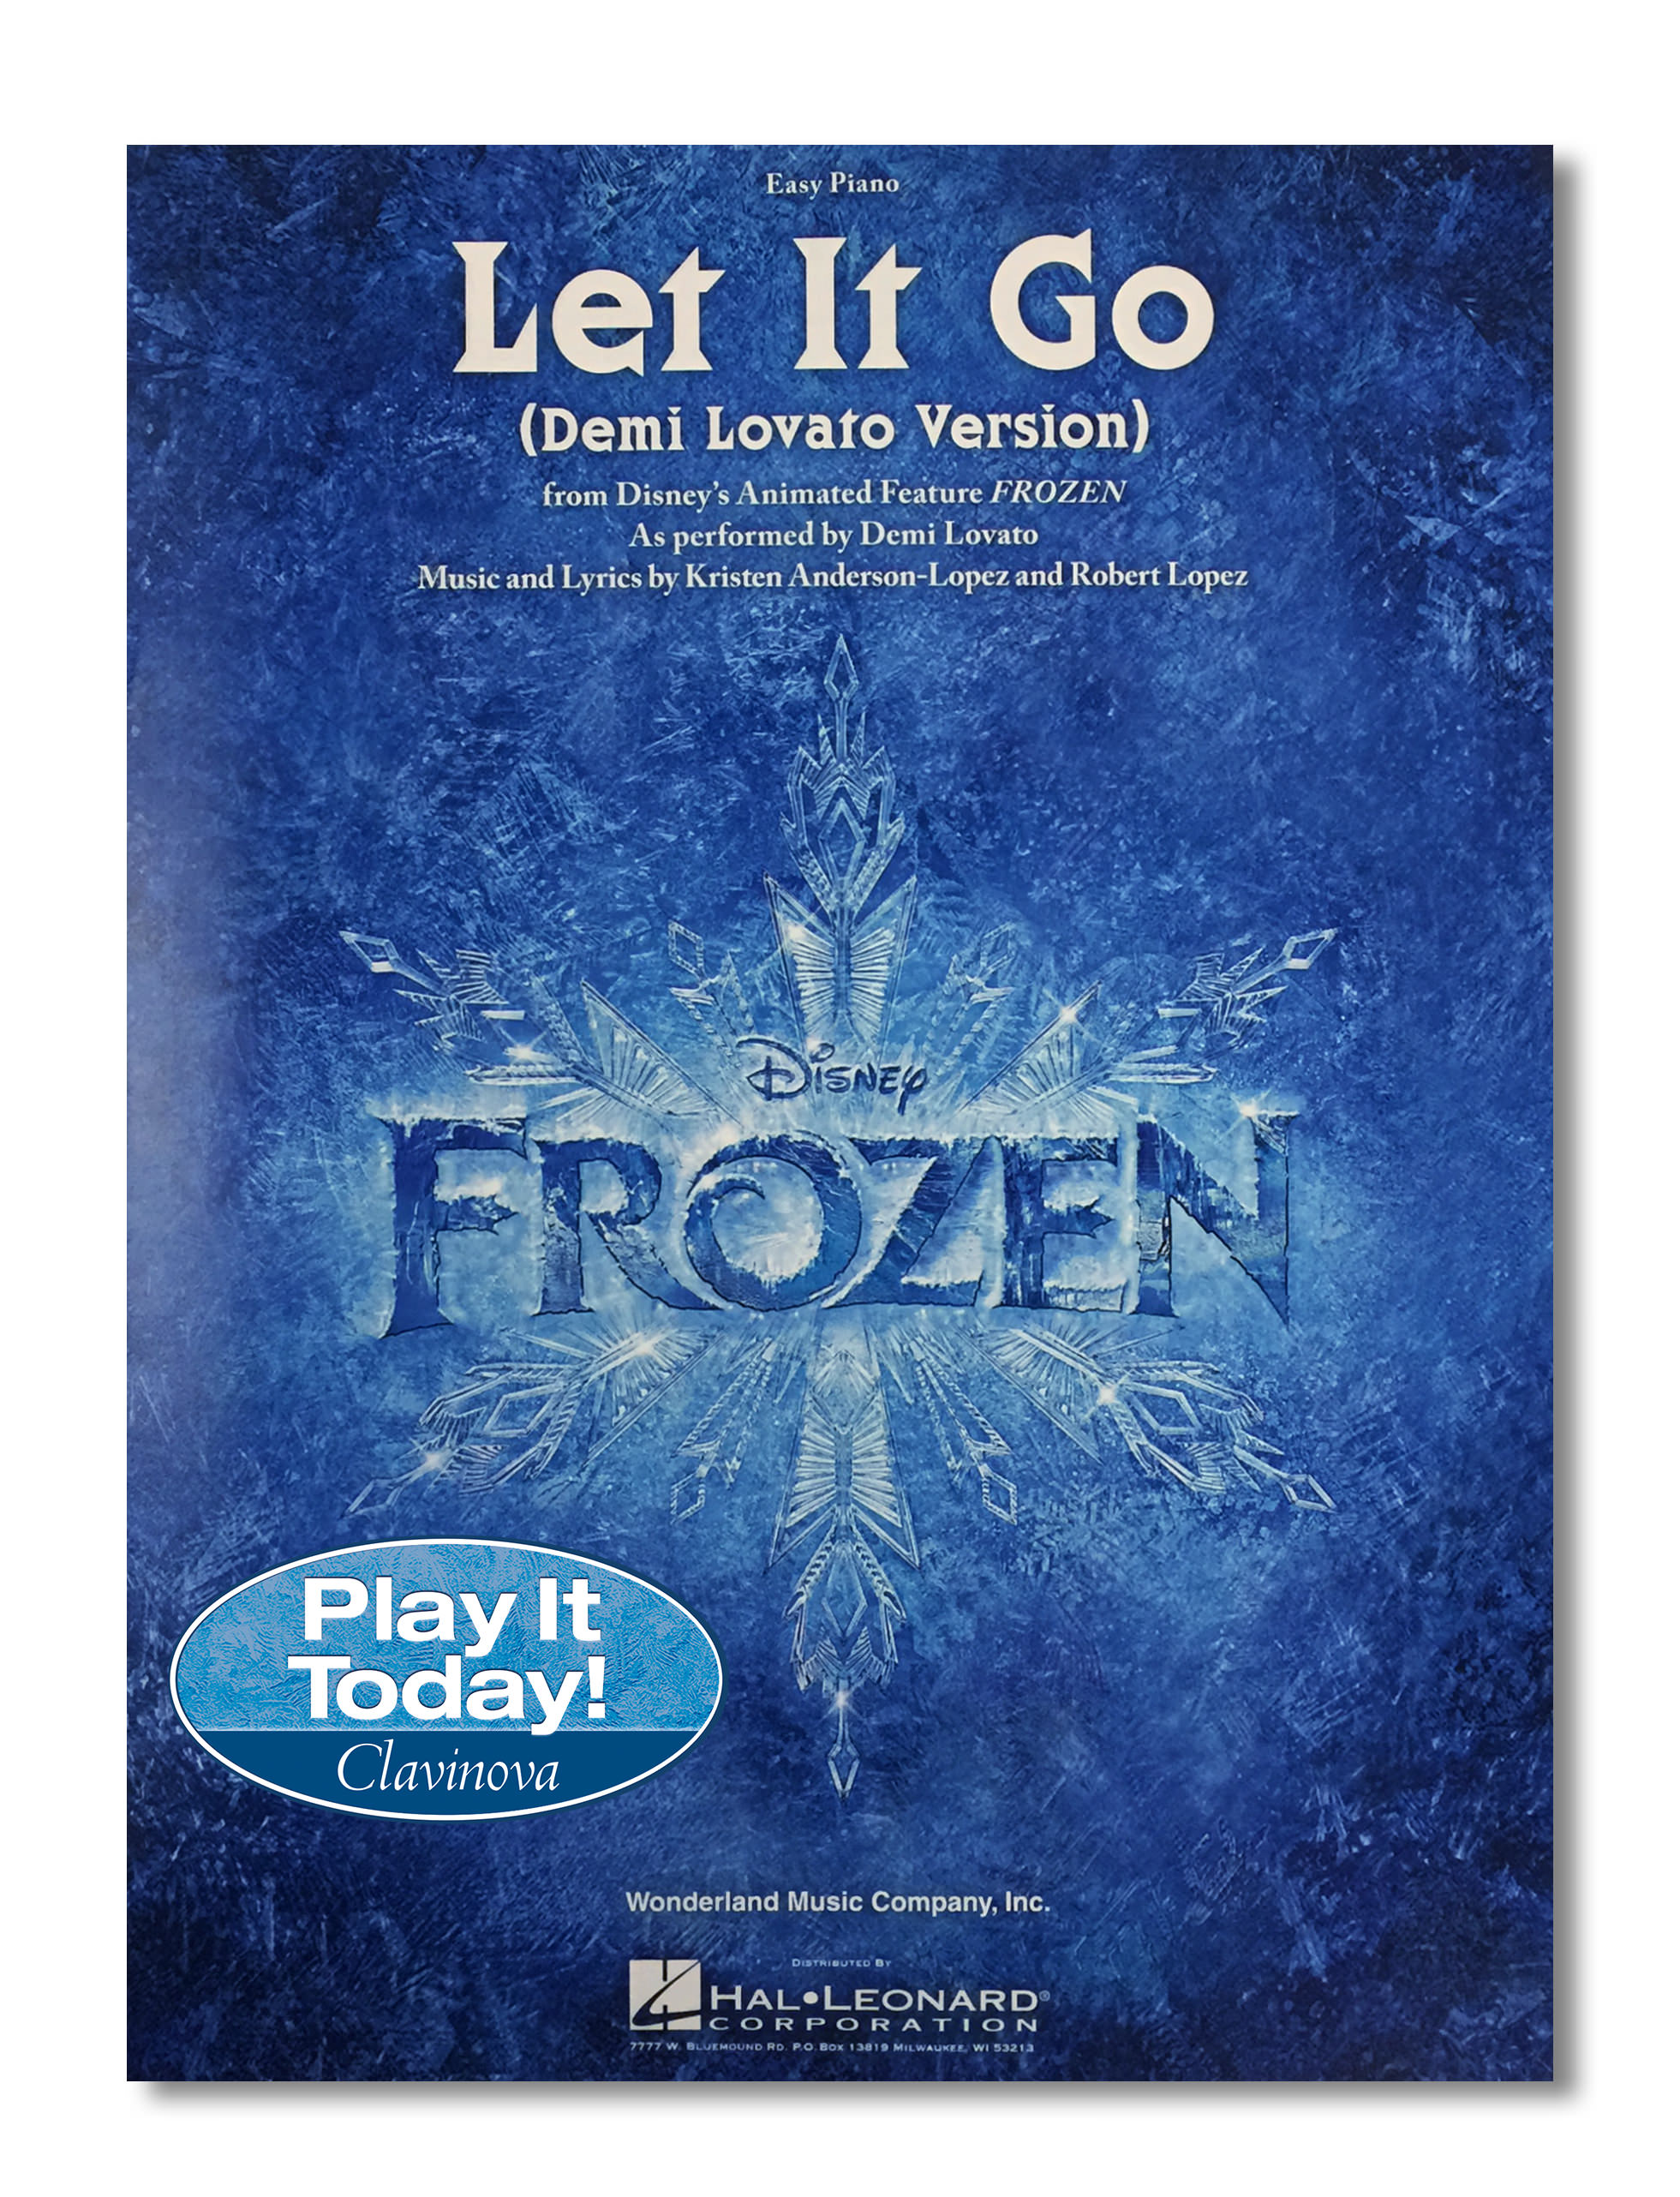 Frozen booklet with sticker